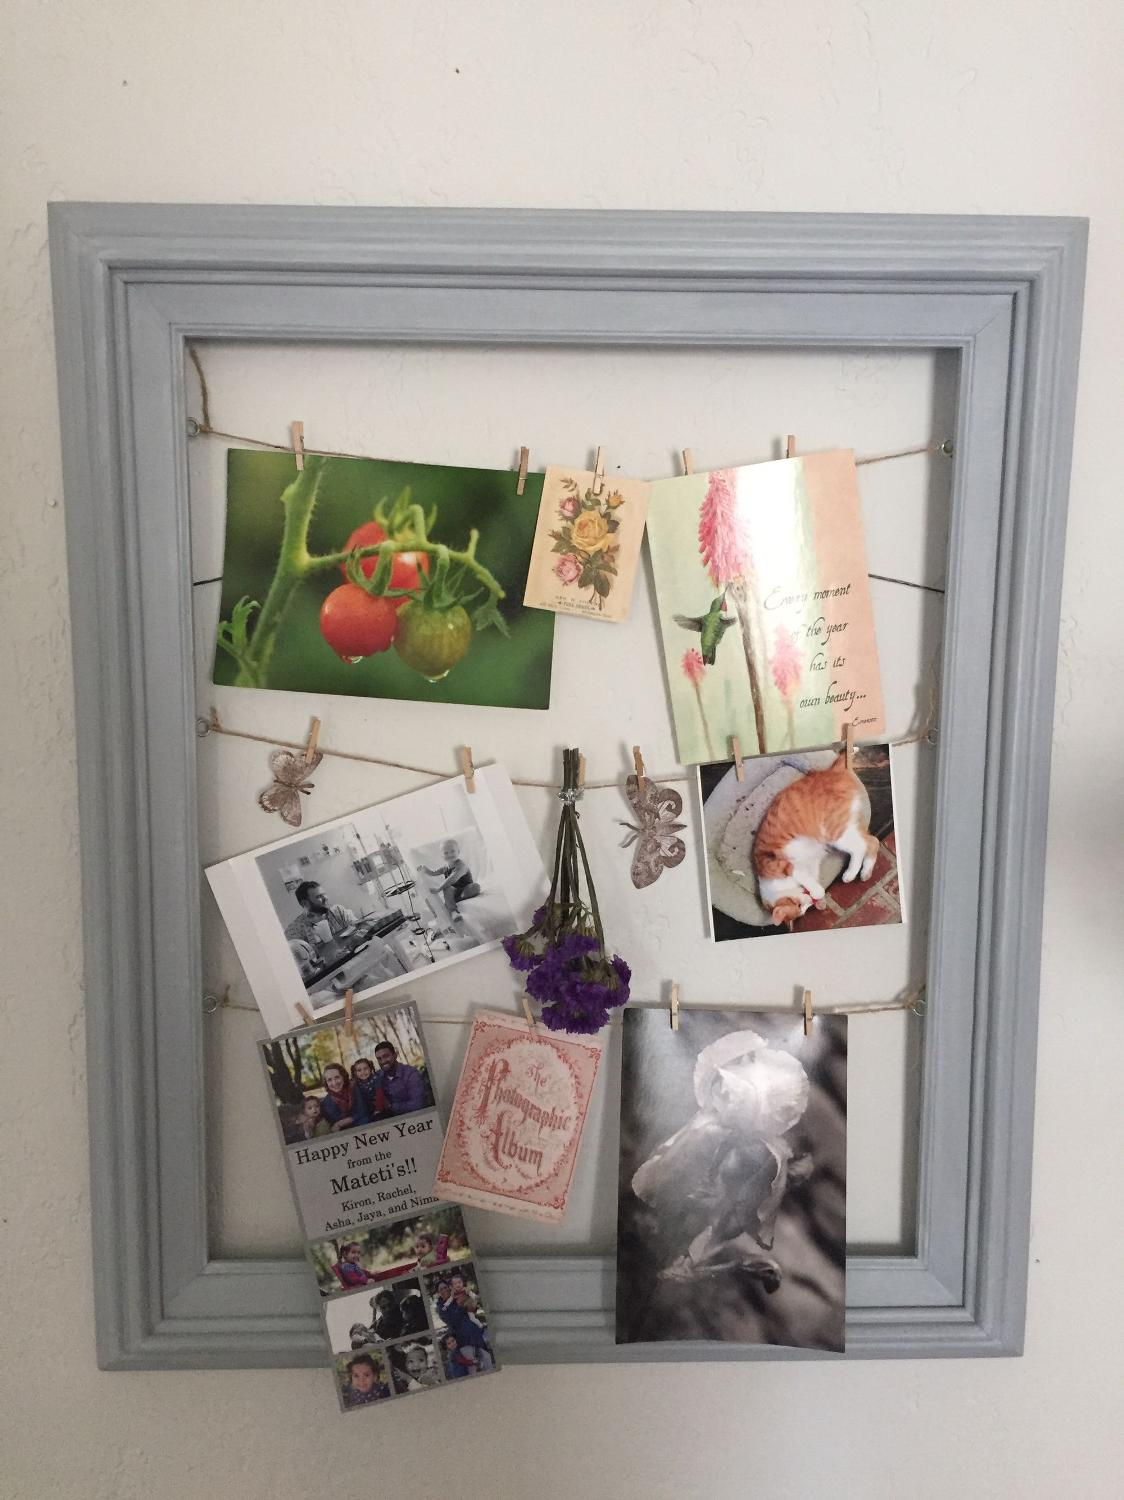 Best Newt Made Memory Frame For Sale In Bloomington Indiana For 2017